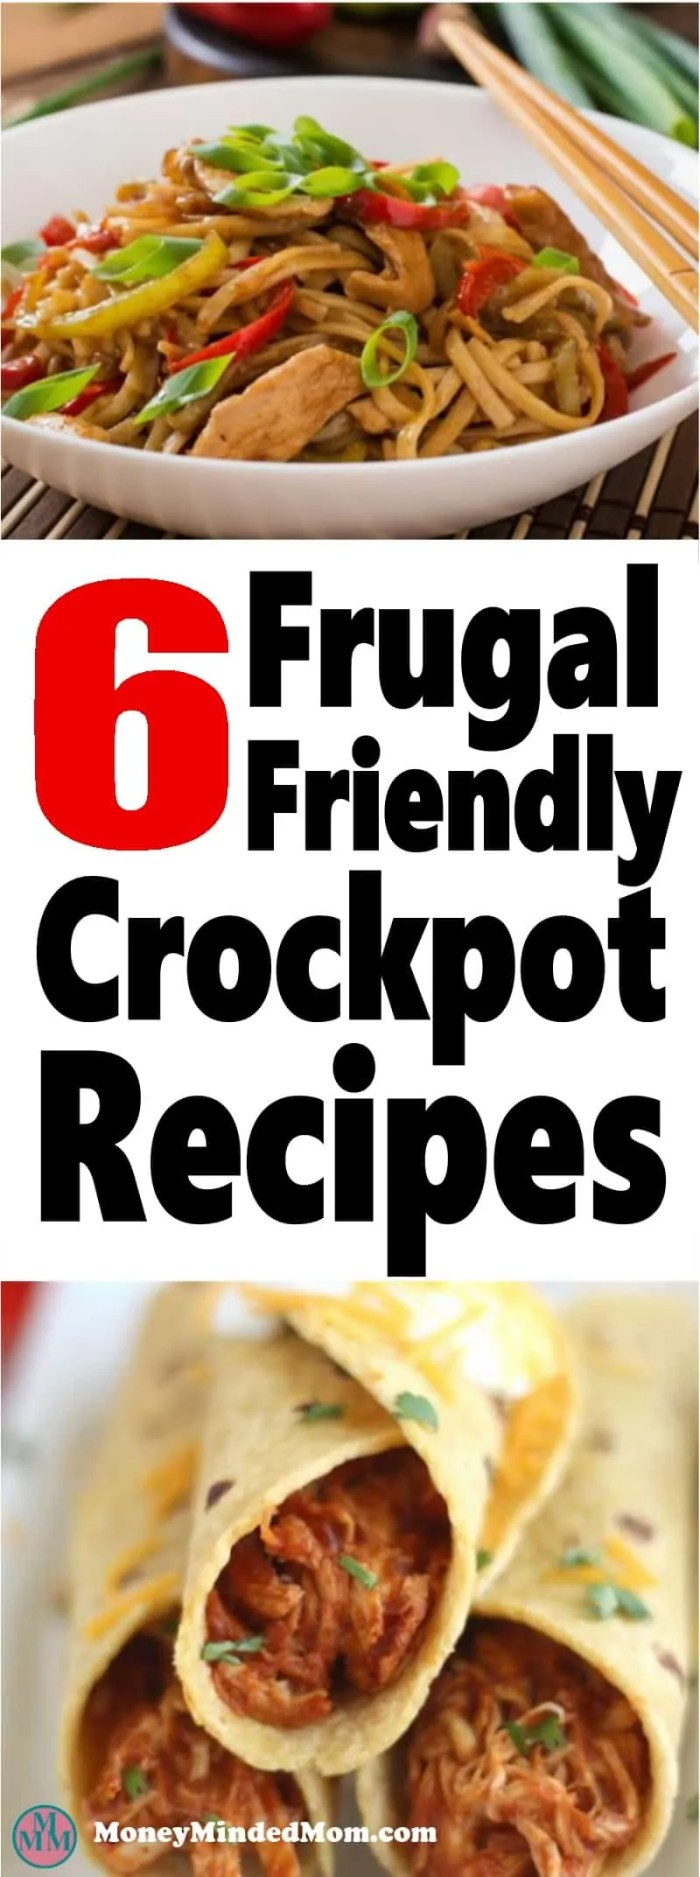 6 Frugal Friendly Crock Pot Meals ~ Crock pot meals are a great time and money saver in the kitchen. Check out these 6 delicious crockpot recipes that your family is sure to love!! crockpot | slowcooker | meal planning | cheap meals | frugal recipes | recipes #crockpot #mealplanning #cheapmeals #recipes